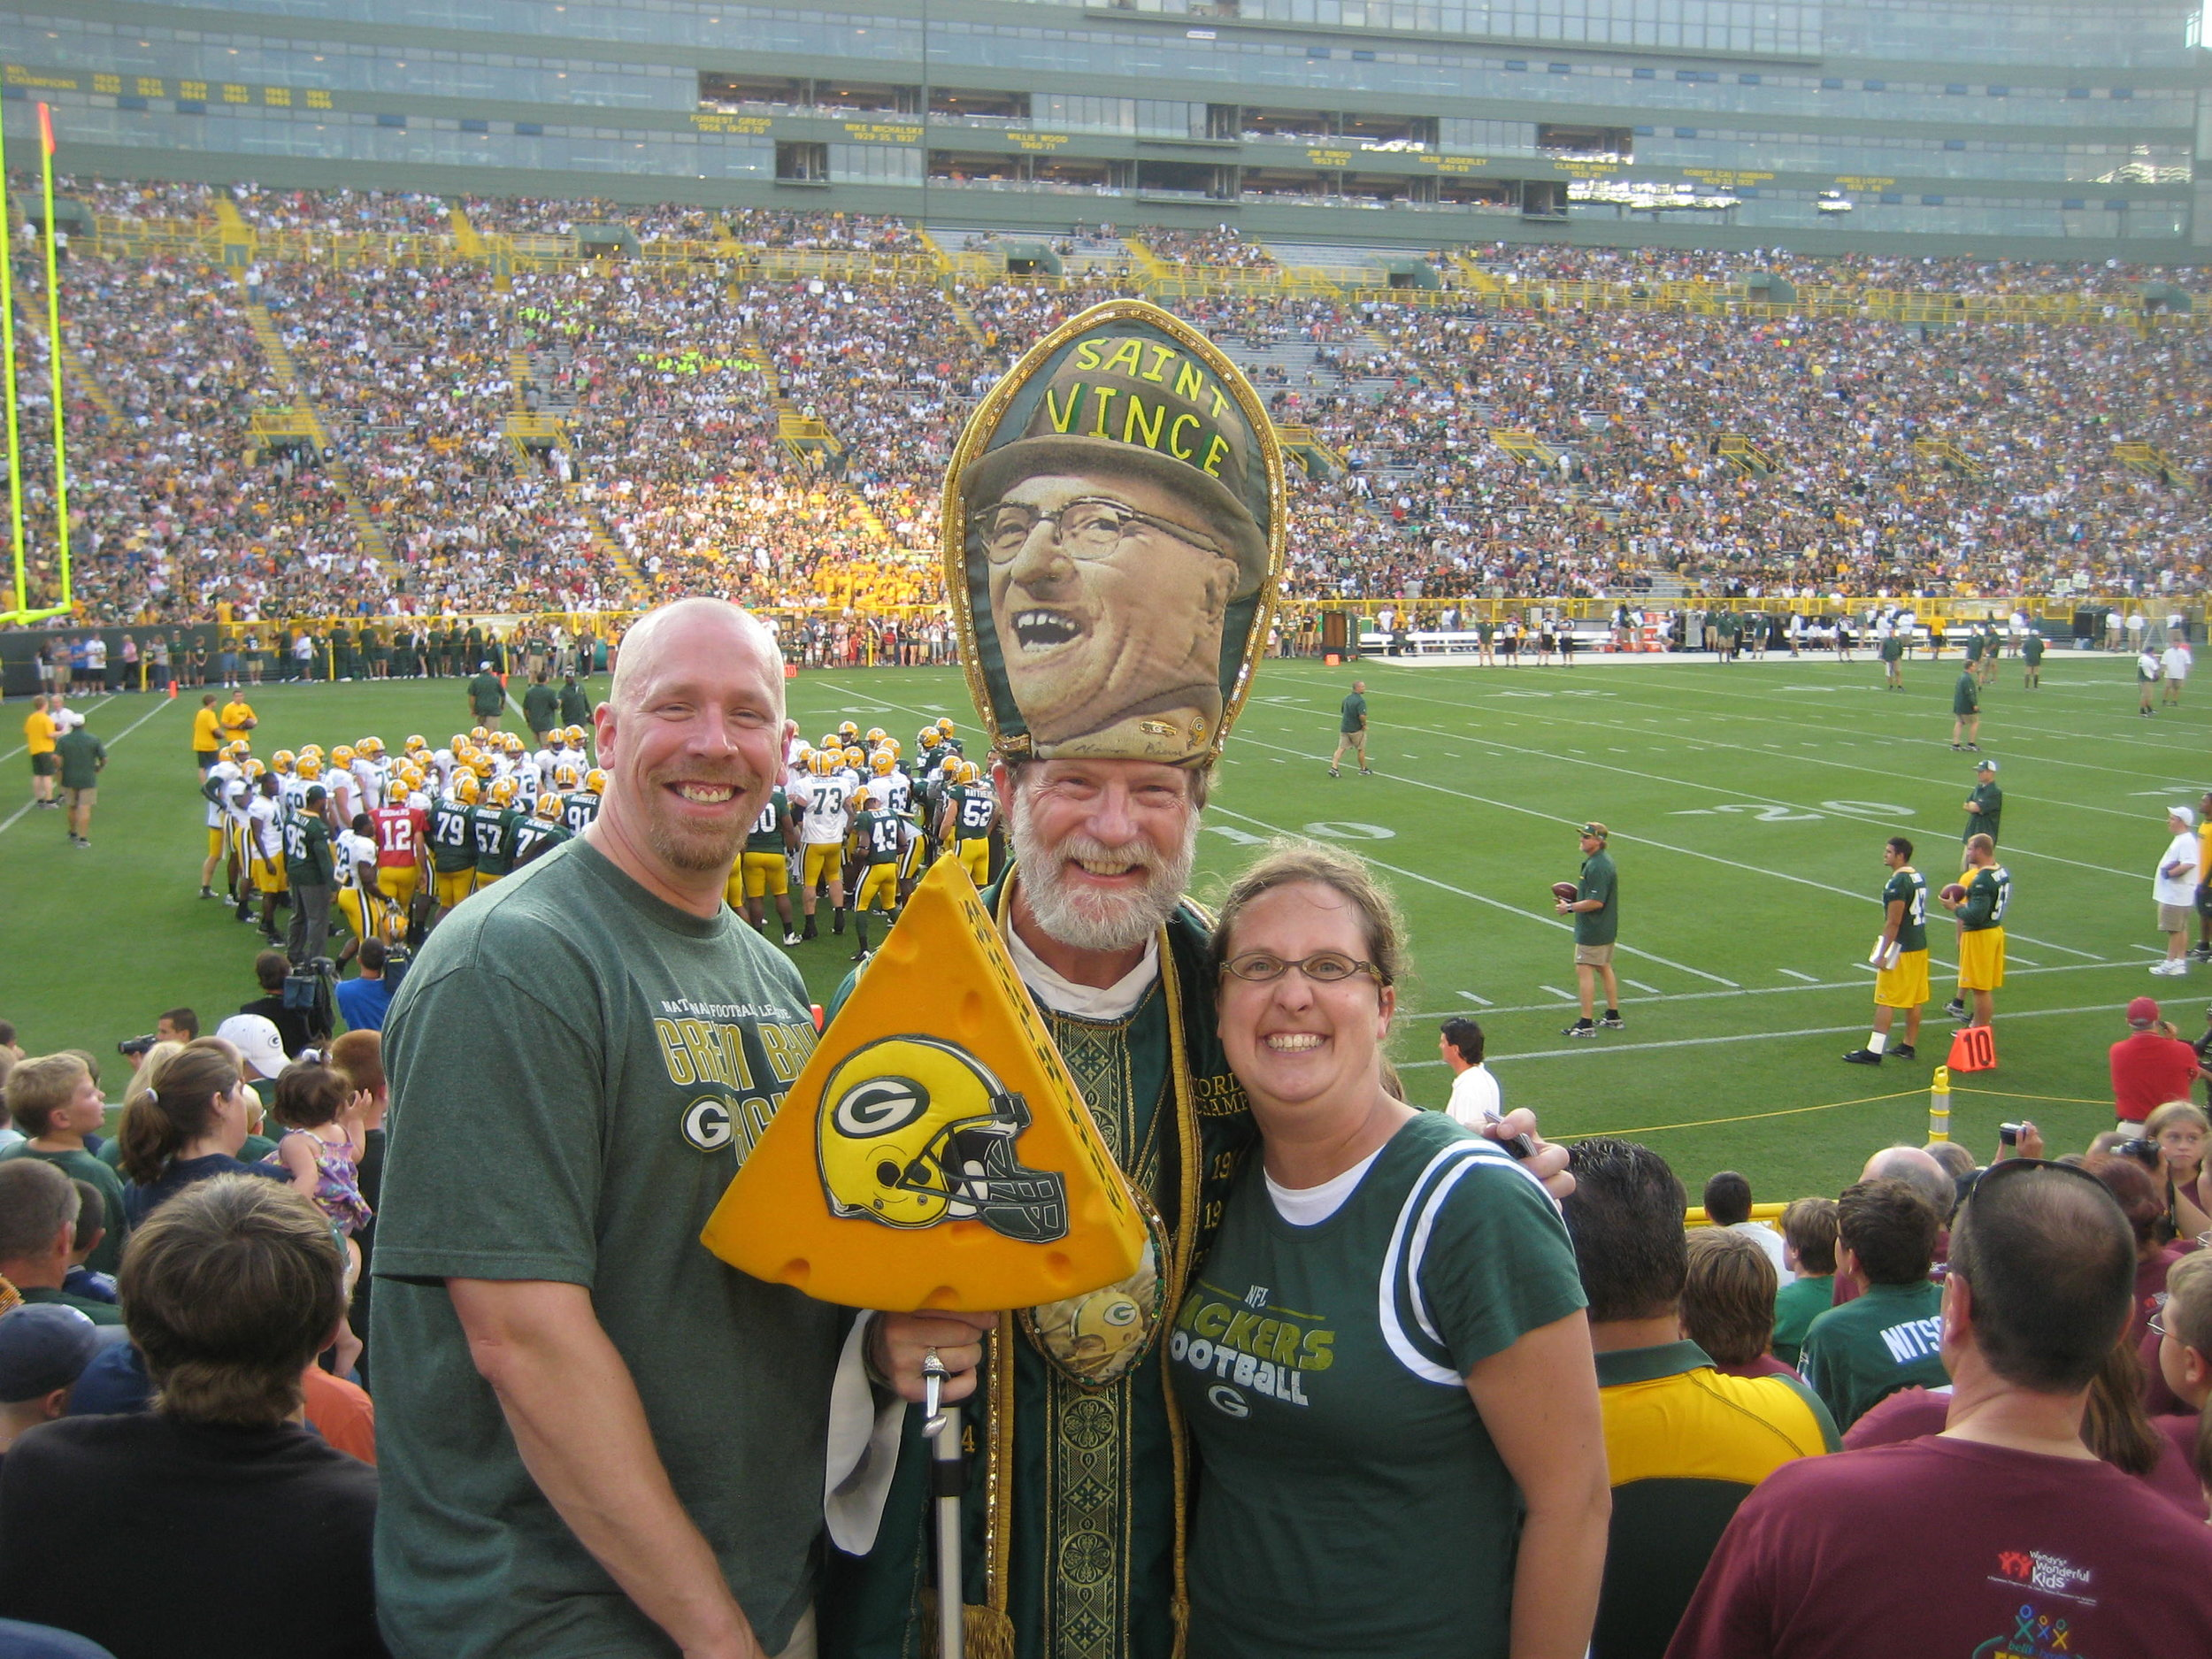 Go Packers! We enjoy going to football games